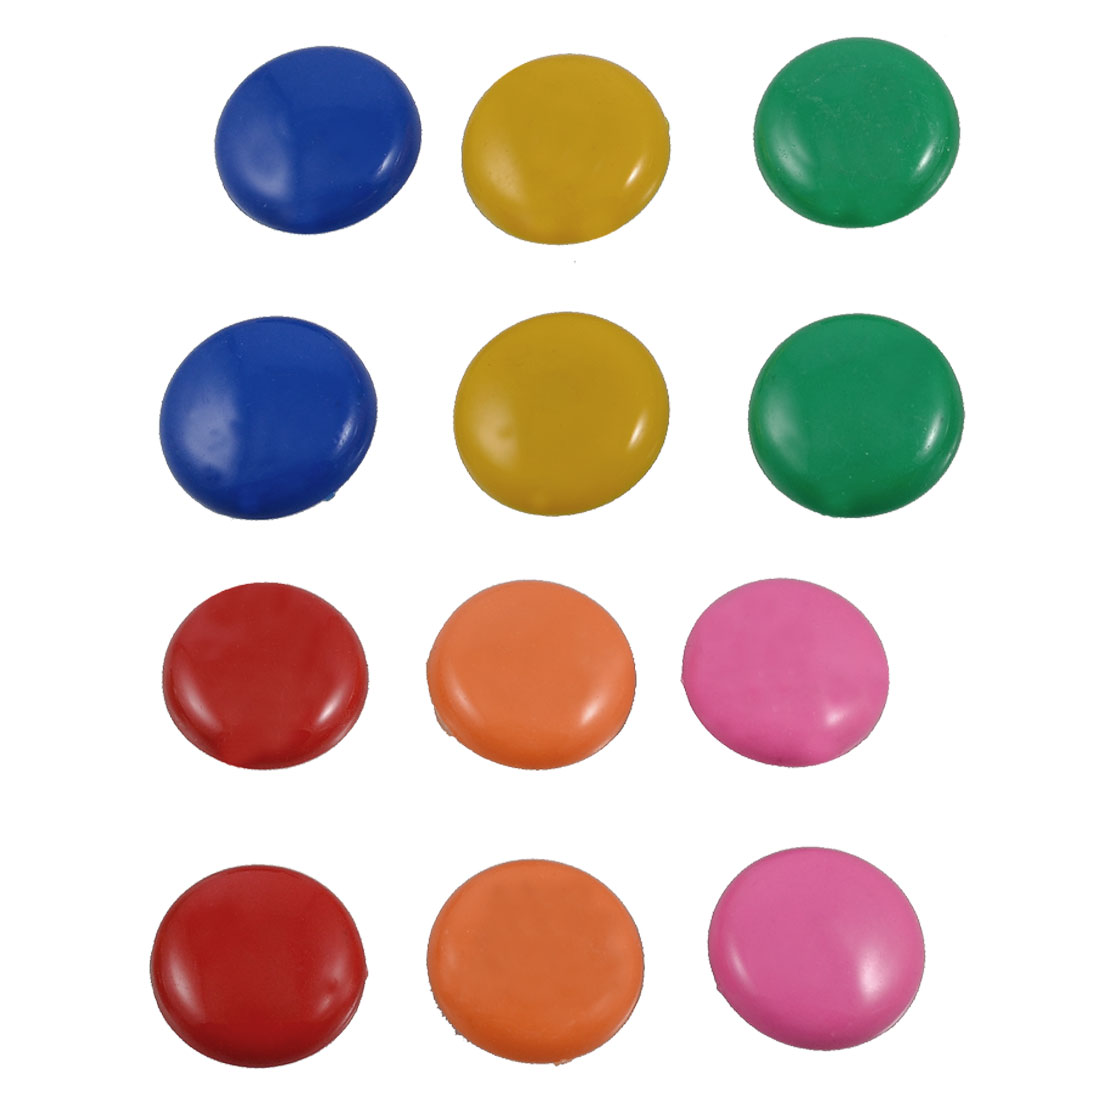 12 Pcs WhiteBoard Magnet Buttons Round Shape 30mm for Refrigerator